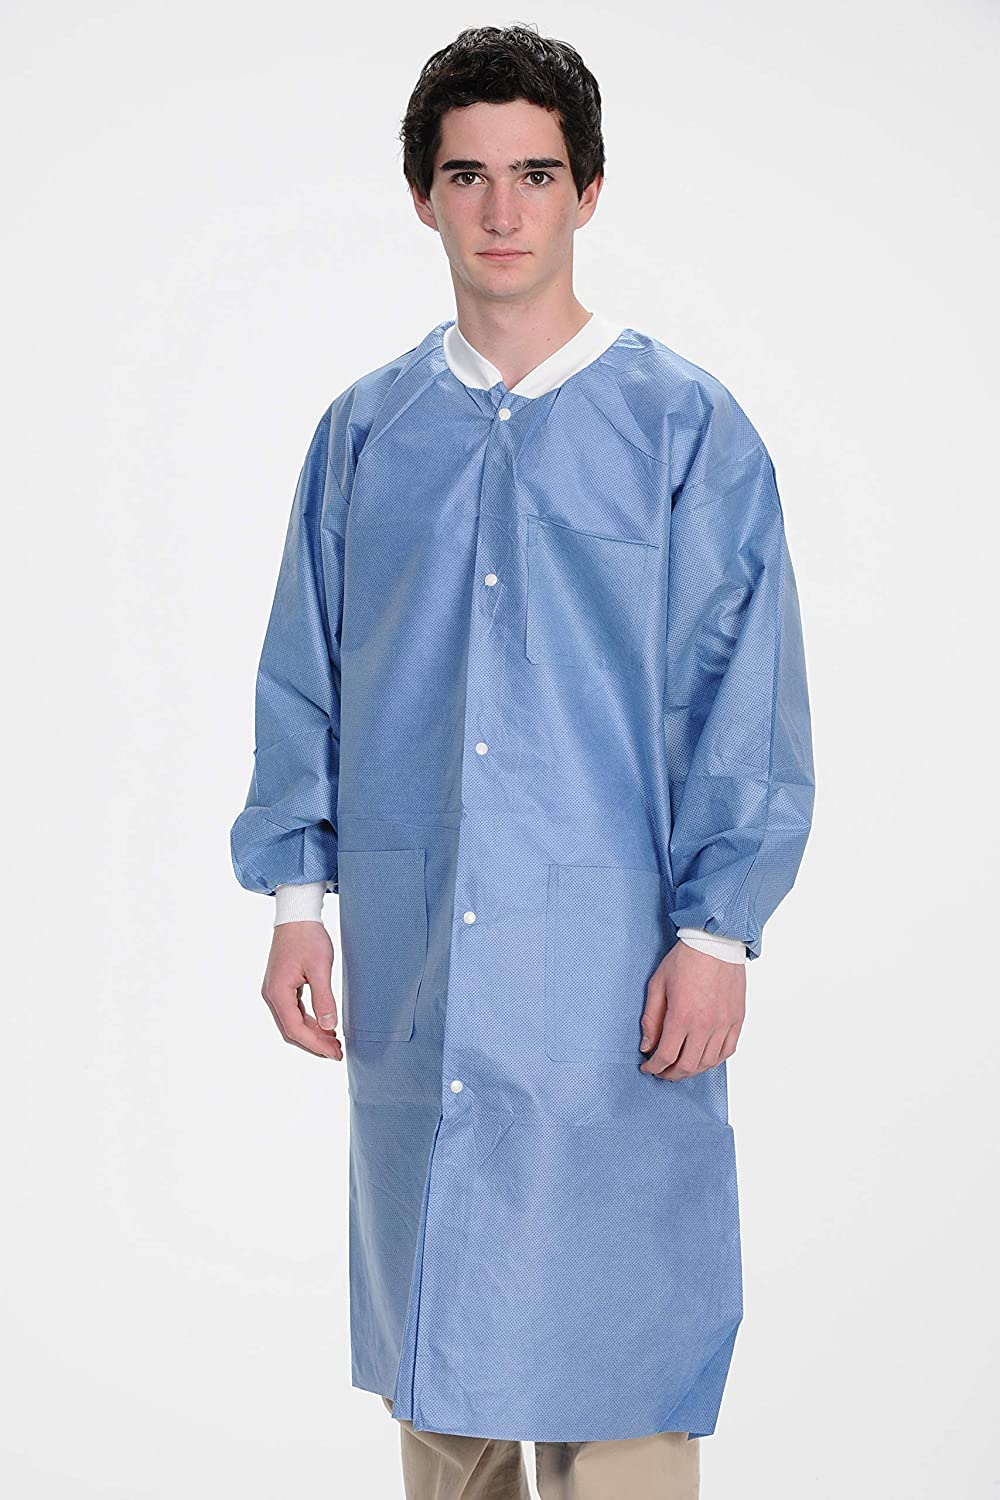 5XL Noble Looking Disposable SMS Knee Length Lab Coat Wrinkle-Free Pack of 10 Ceil Blue ValuMax 3660CB5XL Extra-Safe